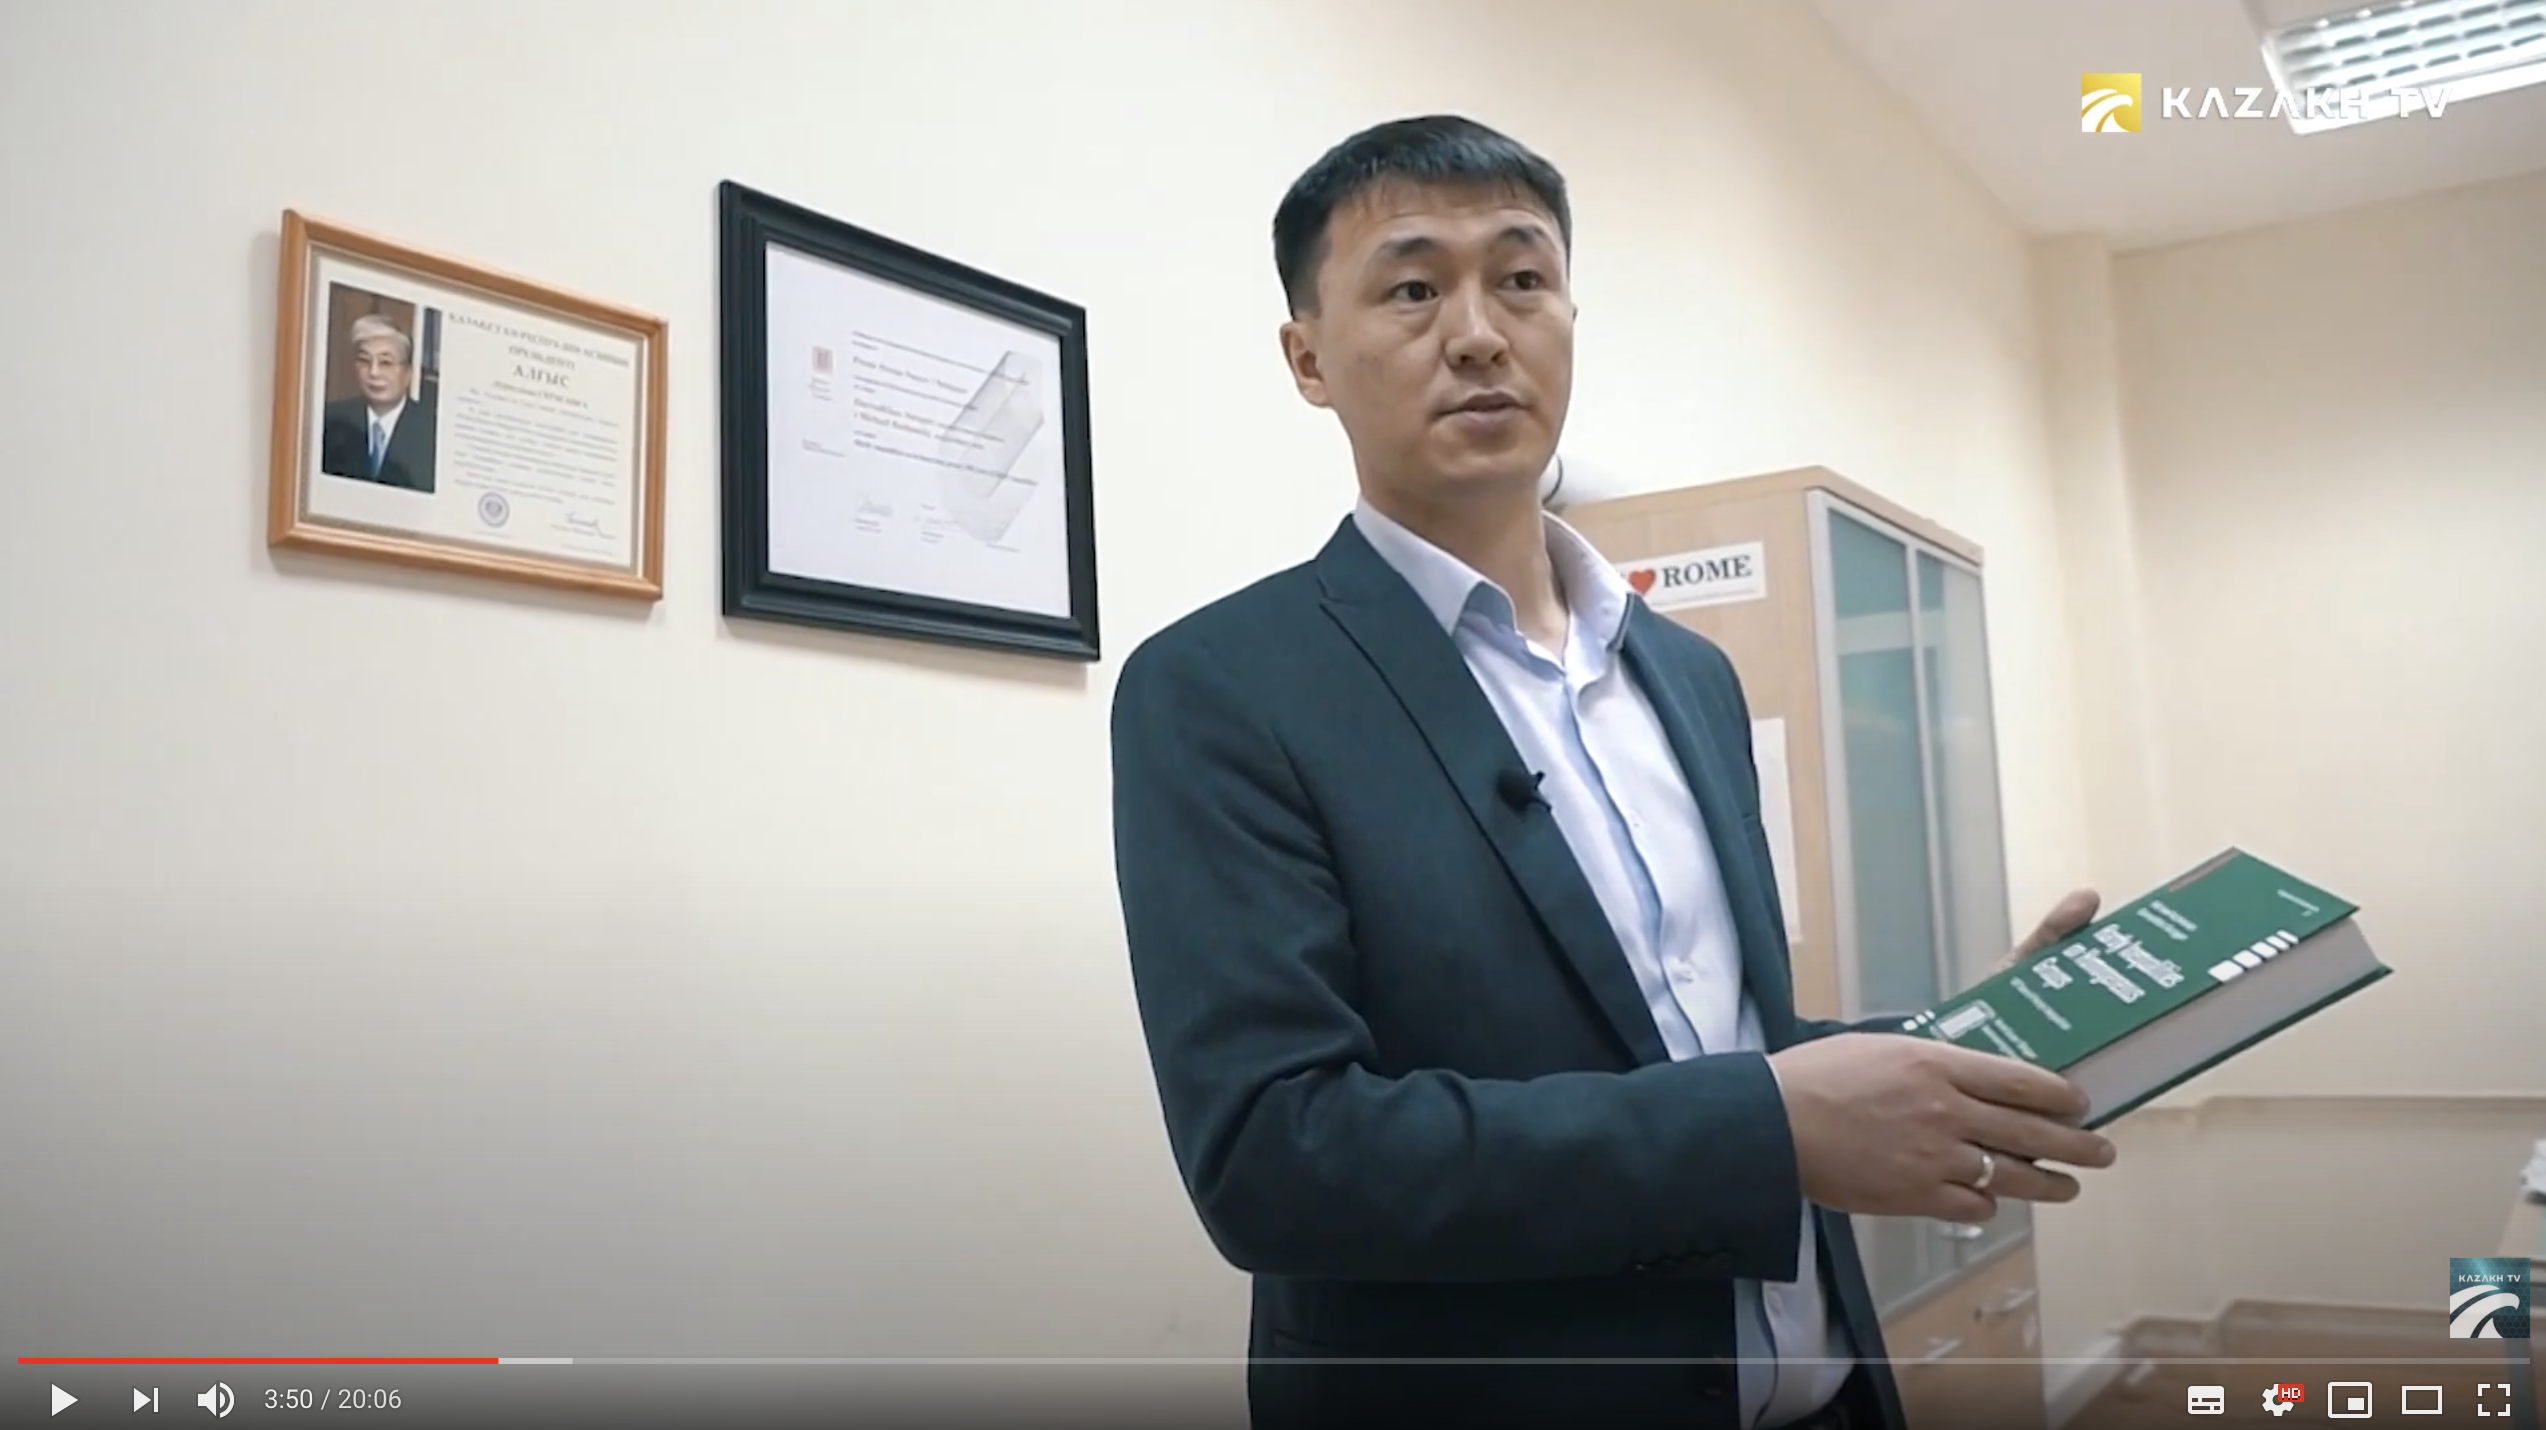 Dr Durvudkhan Suragan on Kazakh TV